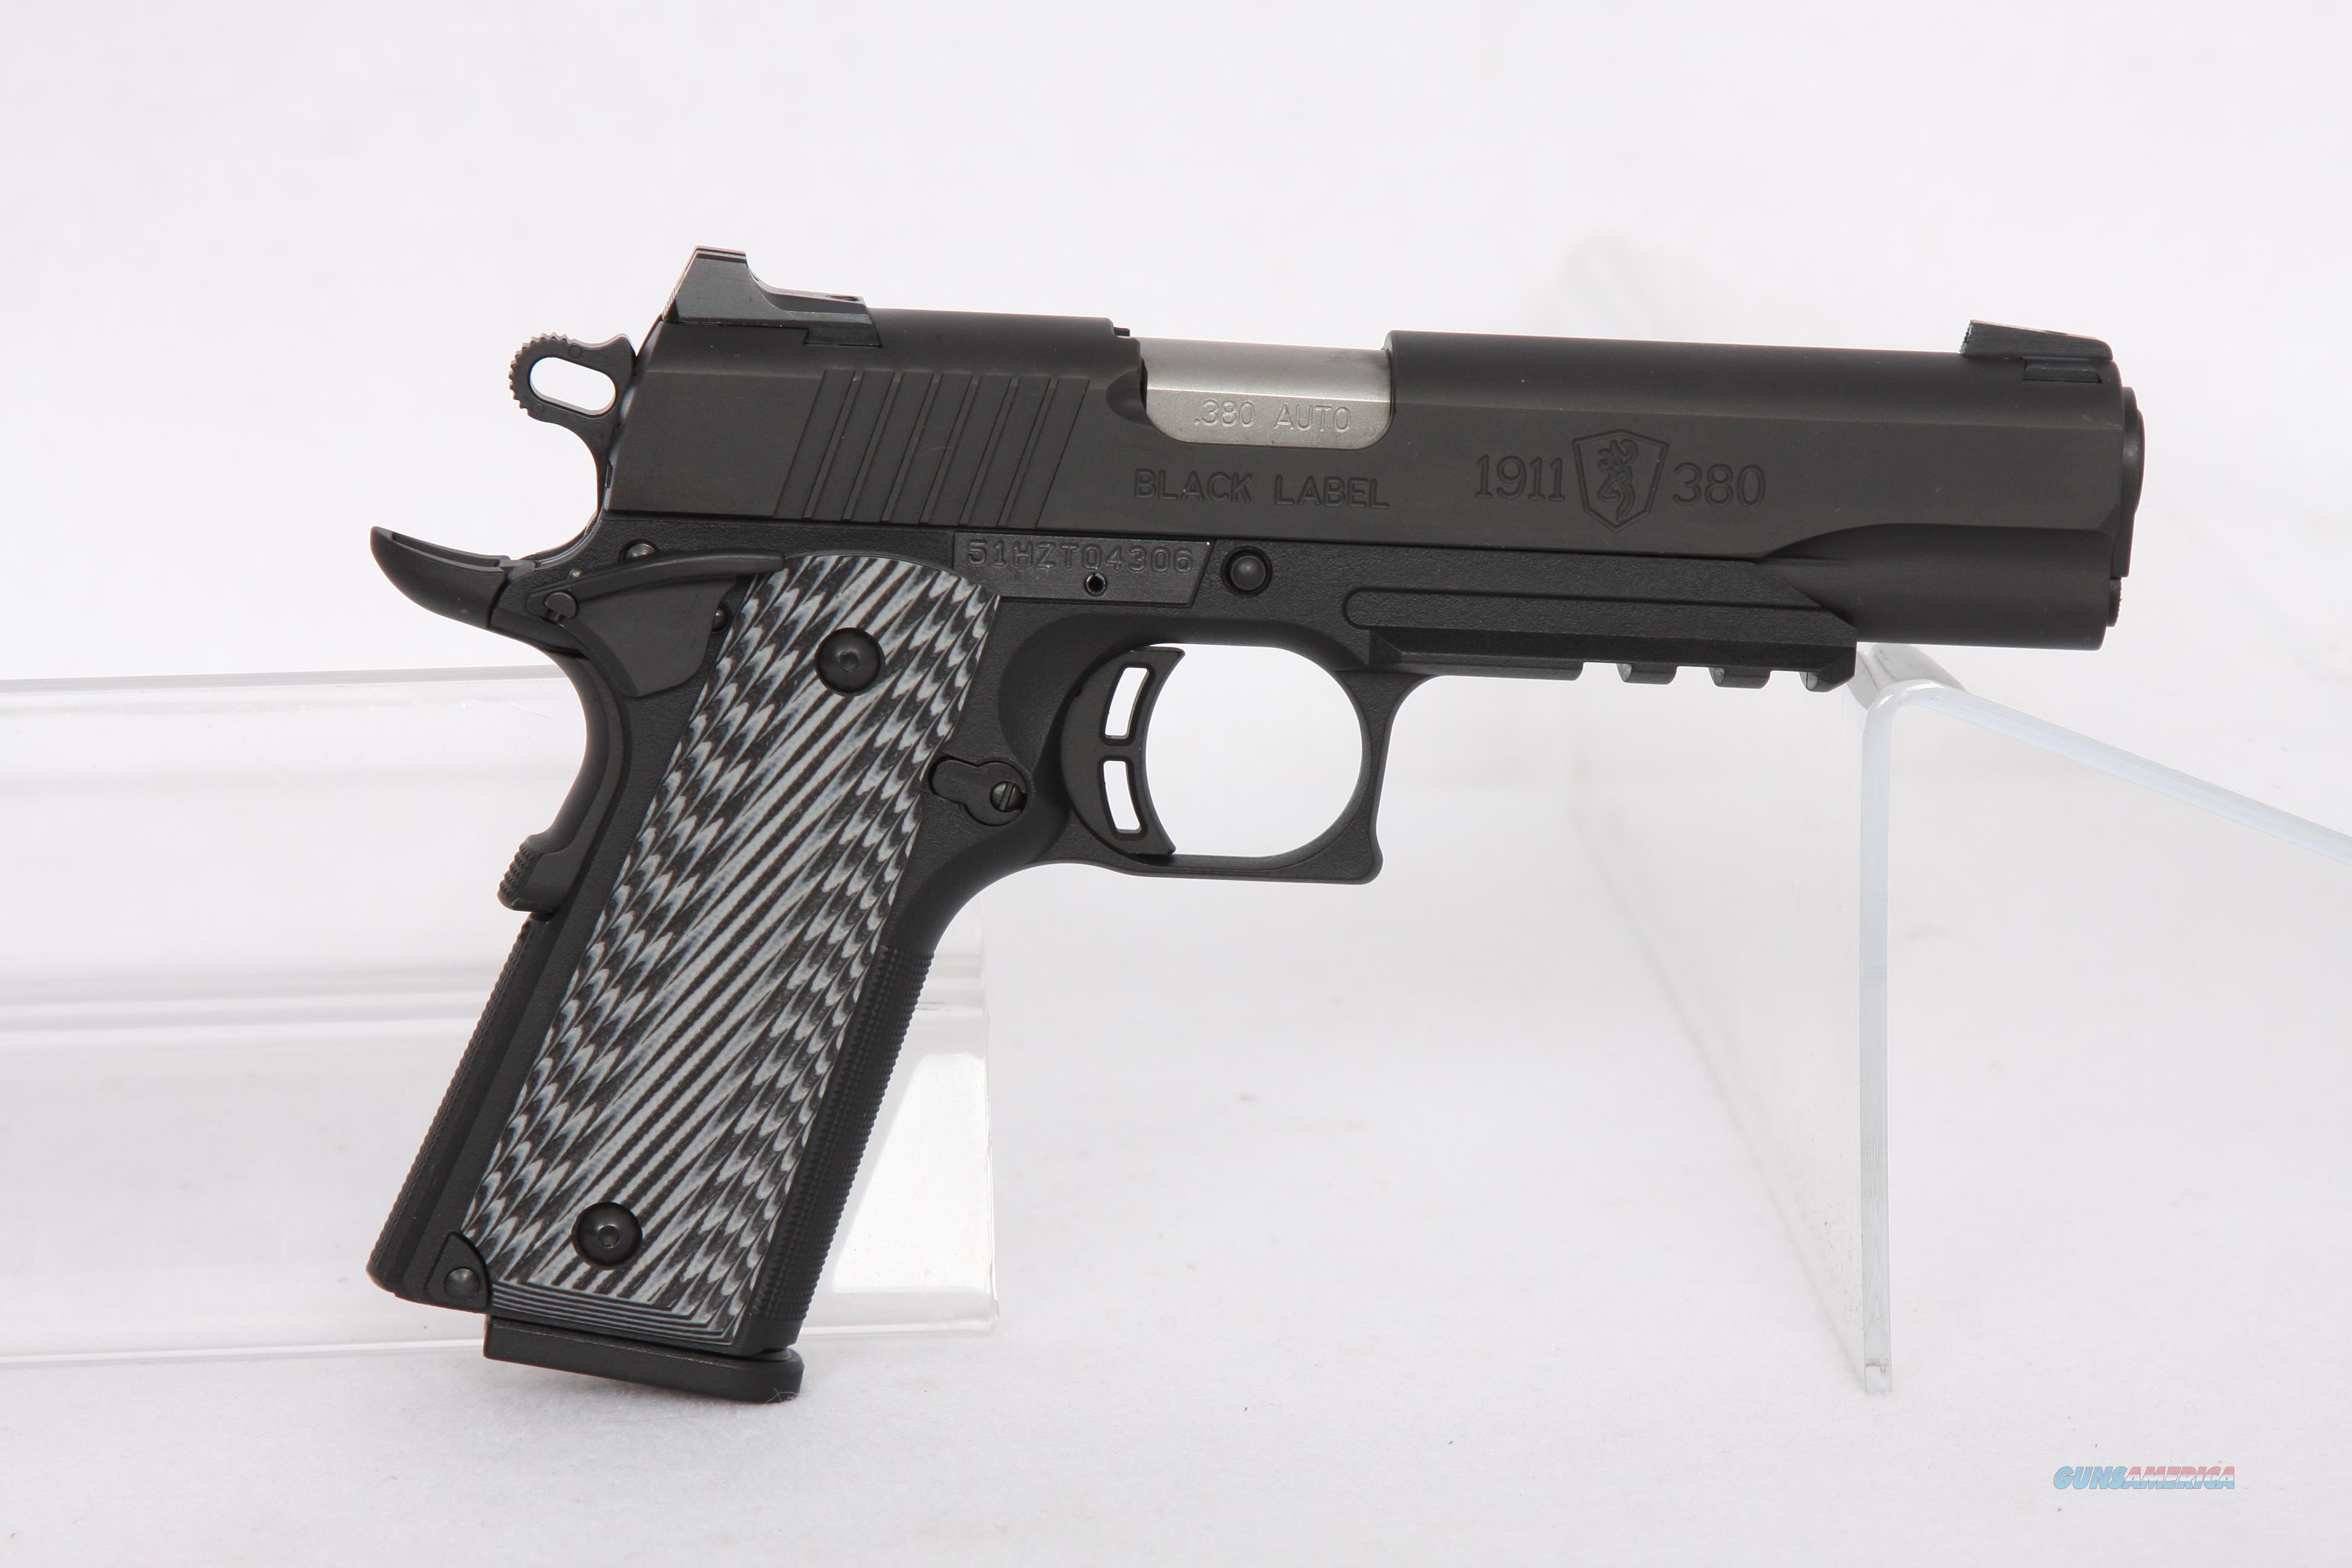 Browning Black Label 1911-380 Pro With Rail Night Sight 4.25  Guns > Pistols > Browning Pistols > Other Autos